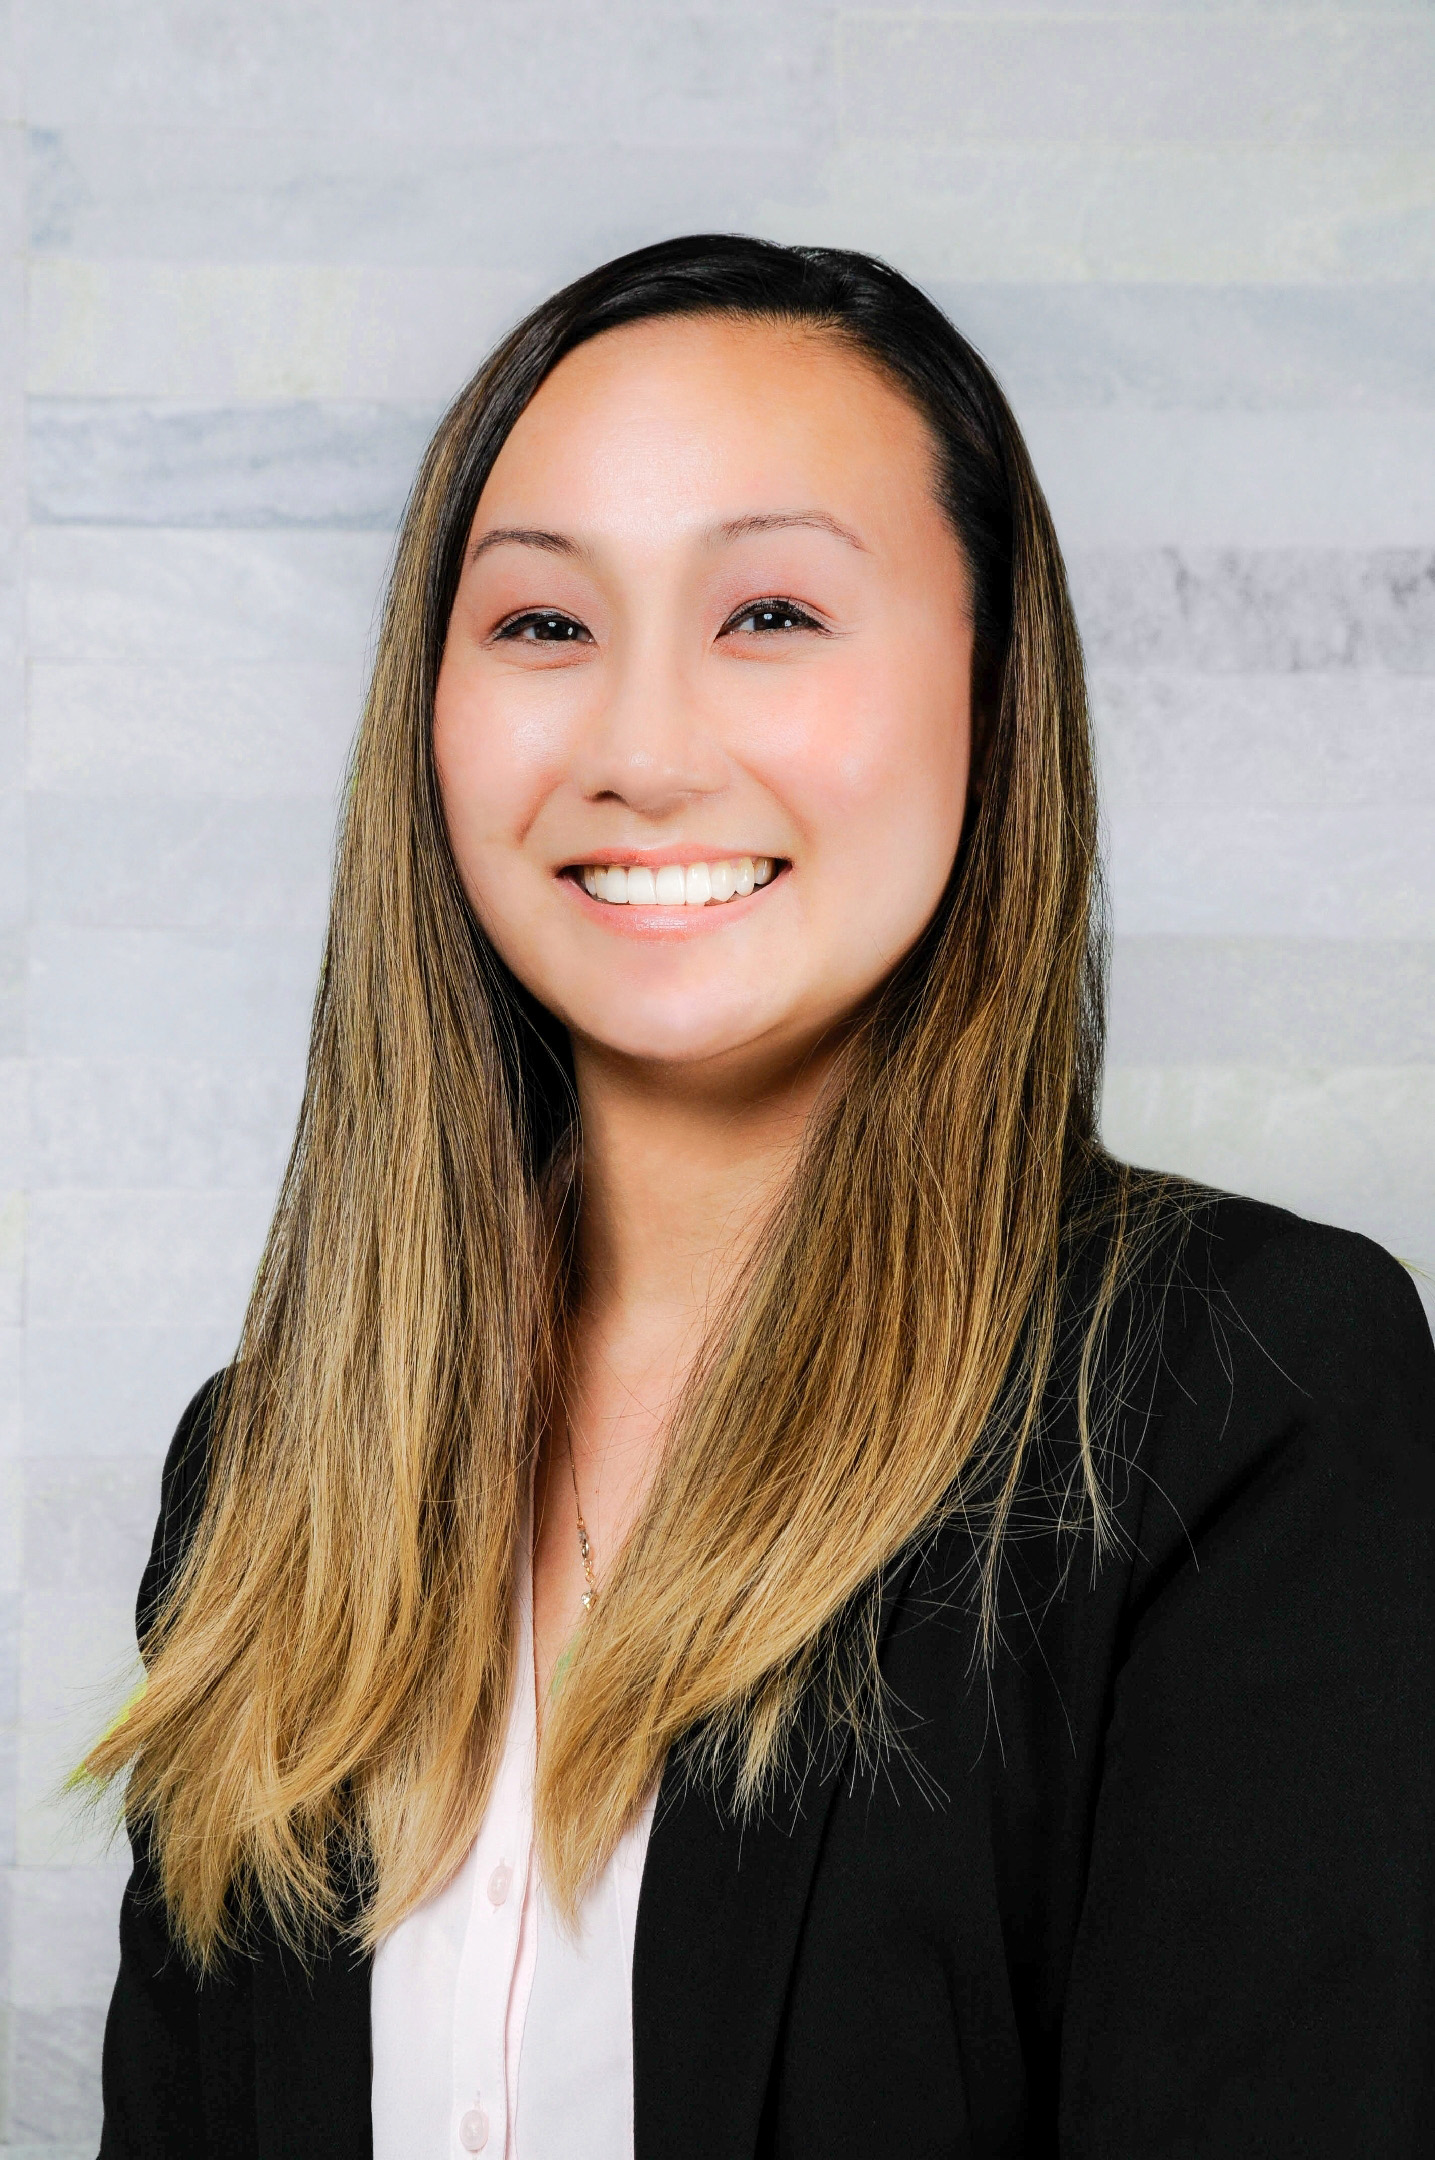 Director Of Contract And Provider Relations - Irene Yu